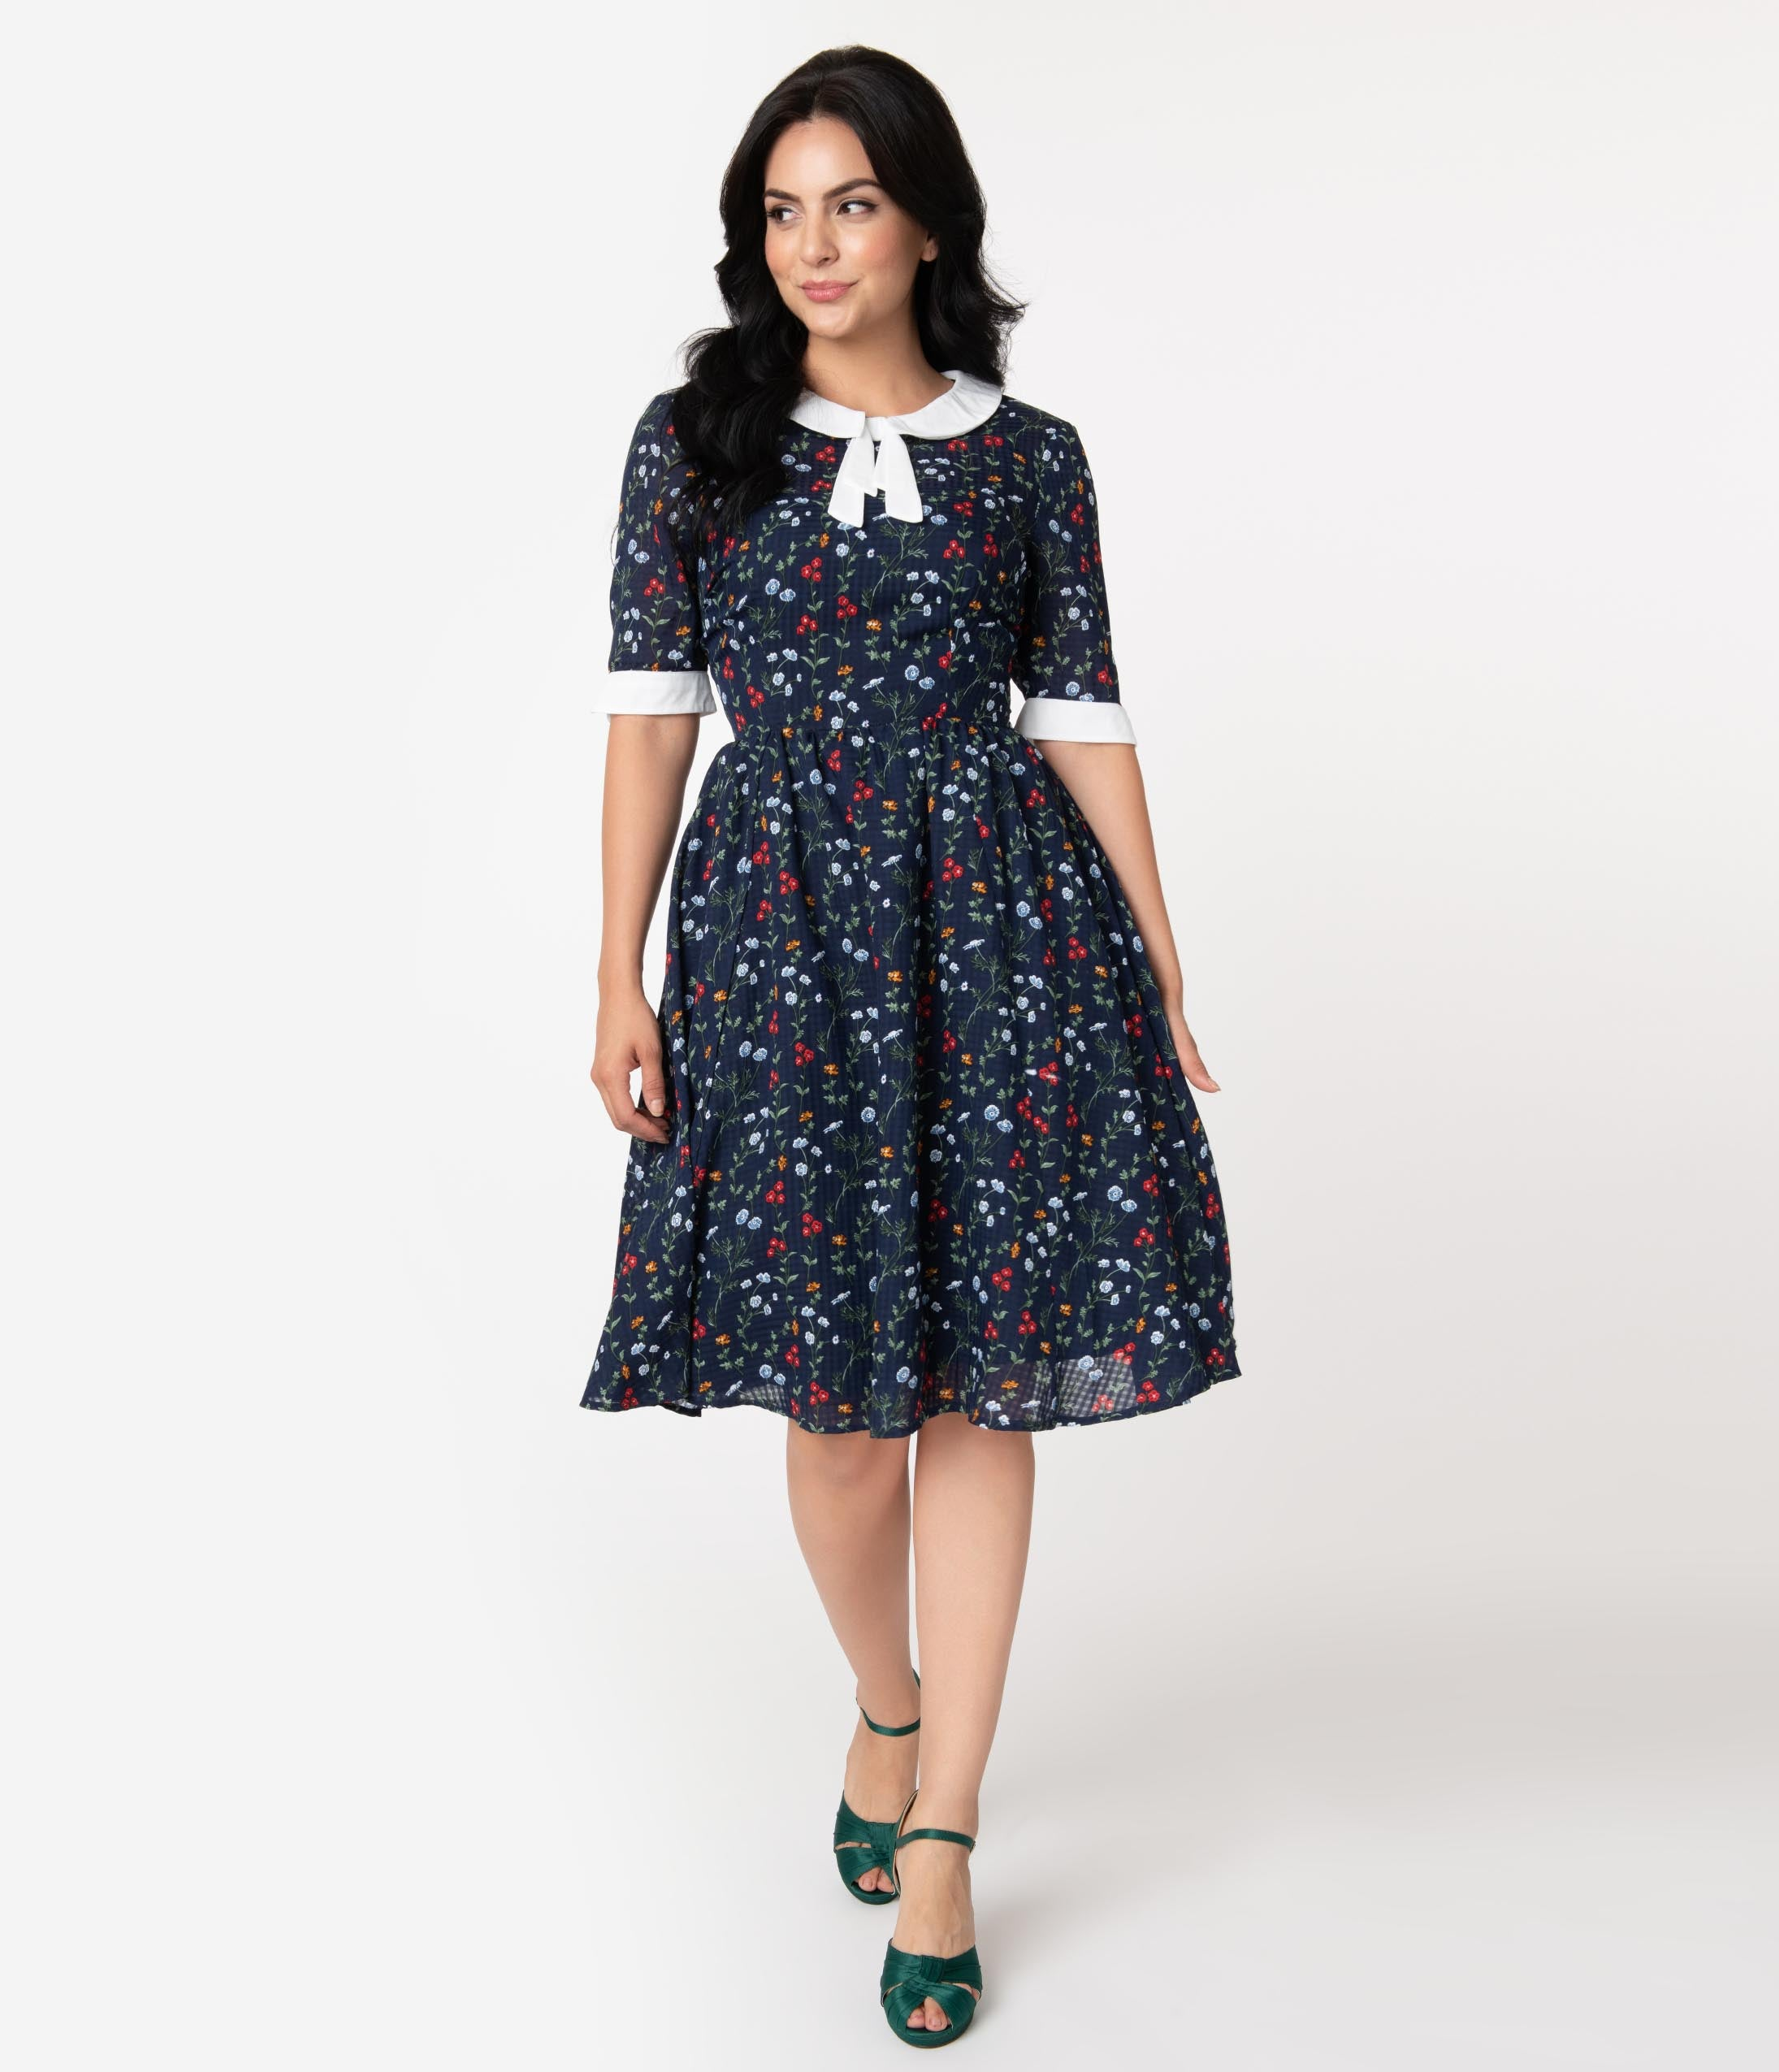 Fifties Dresses : 1950s Style Swing to Wiggle Dresses Unique Vintage 1950S Style Navy Floral Francine Swing Dress $98.00 AT vintagedancer.com